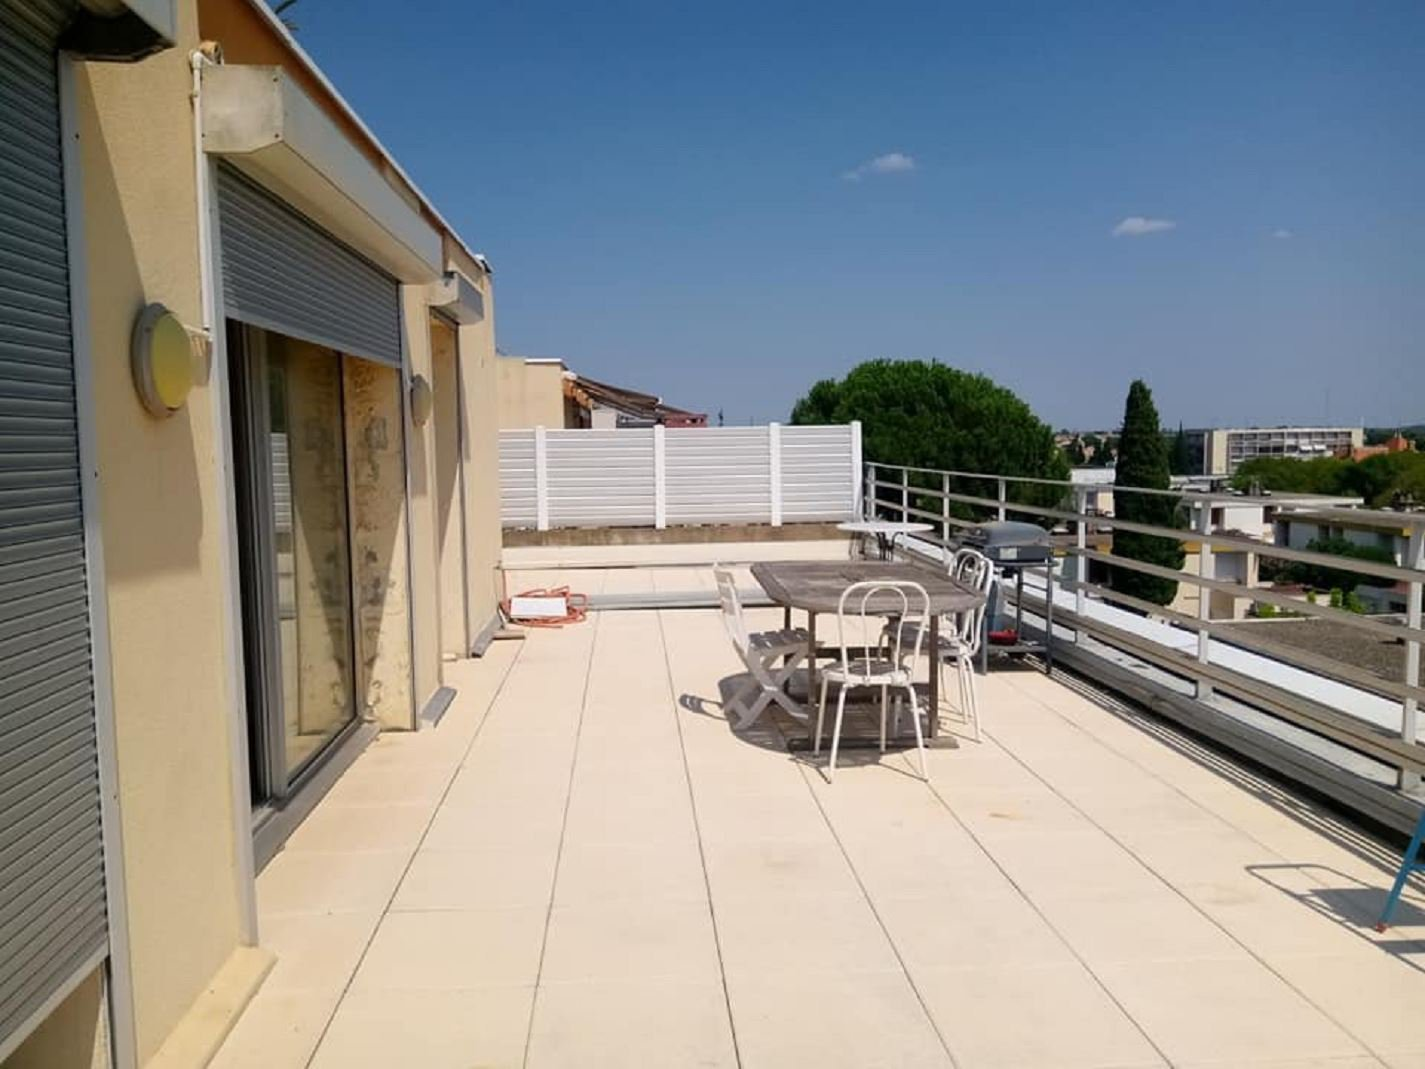 Appartment with terrace in a very nice neigbourhood